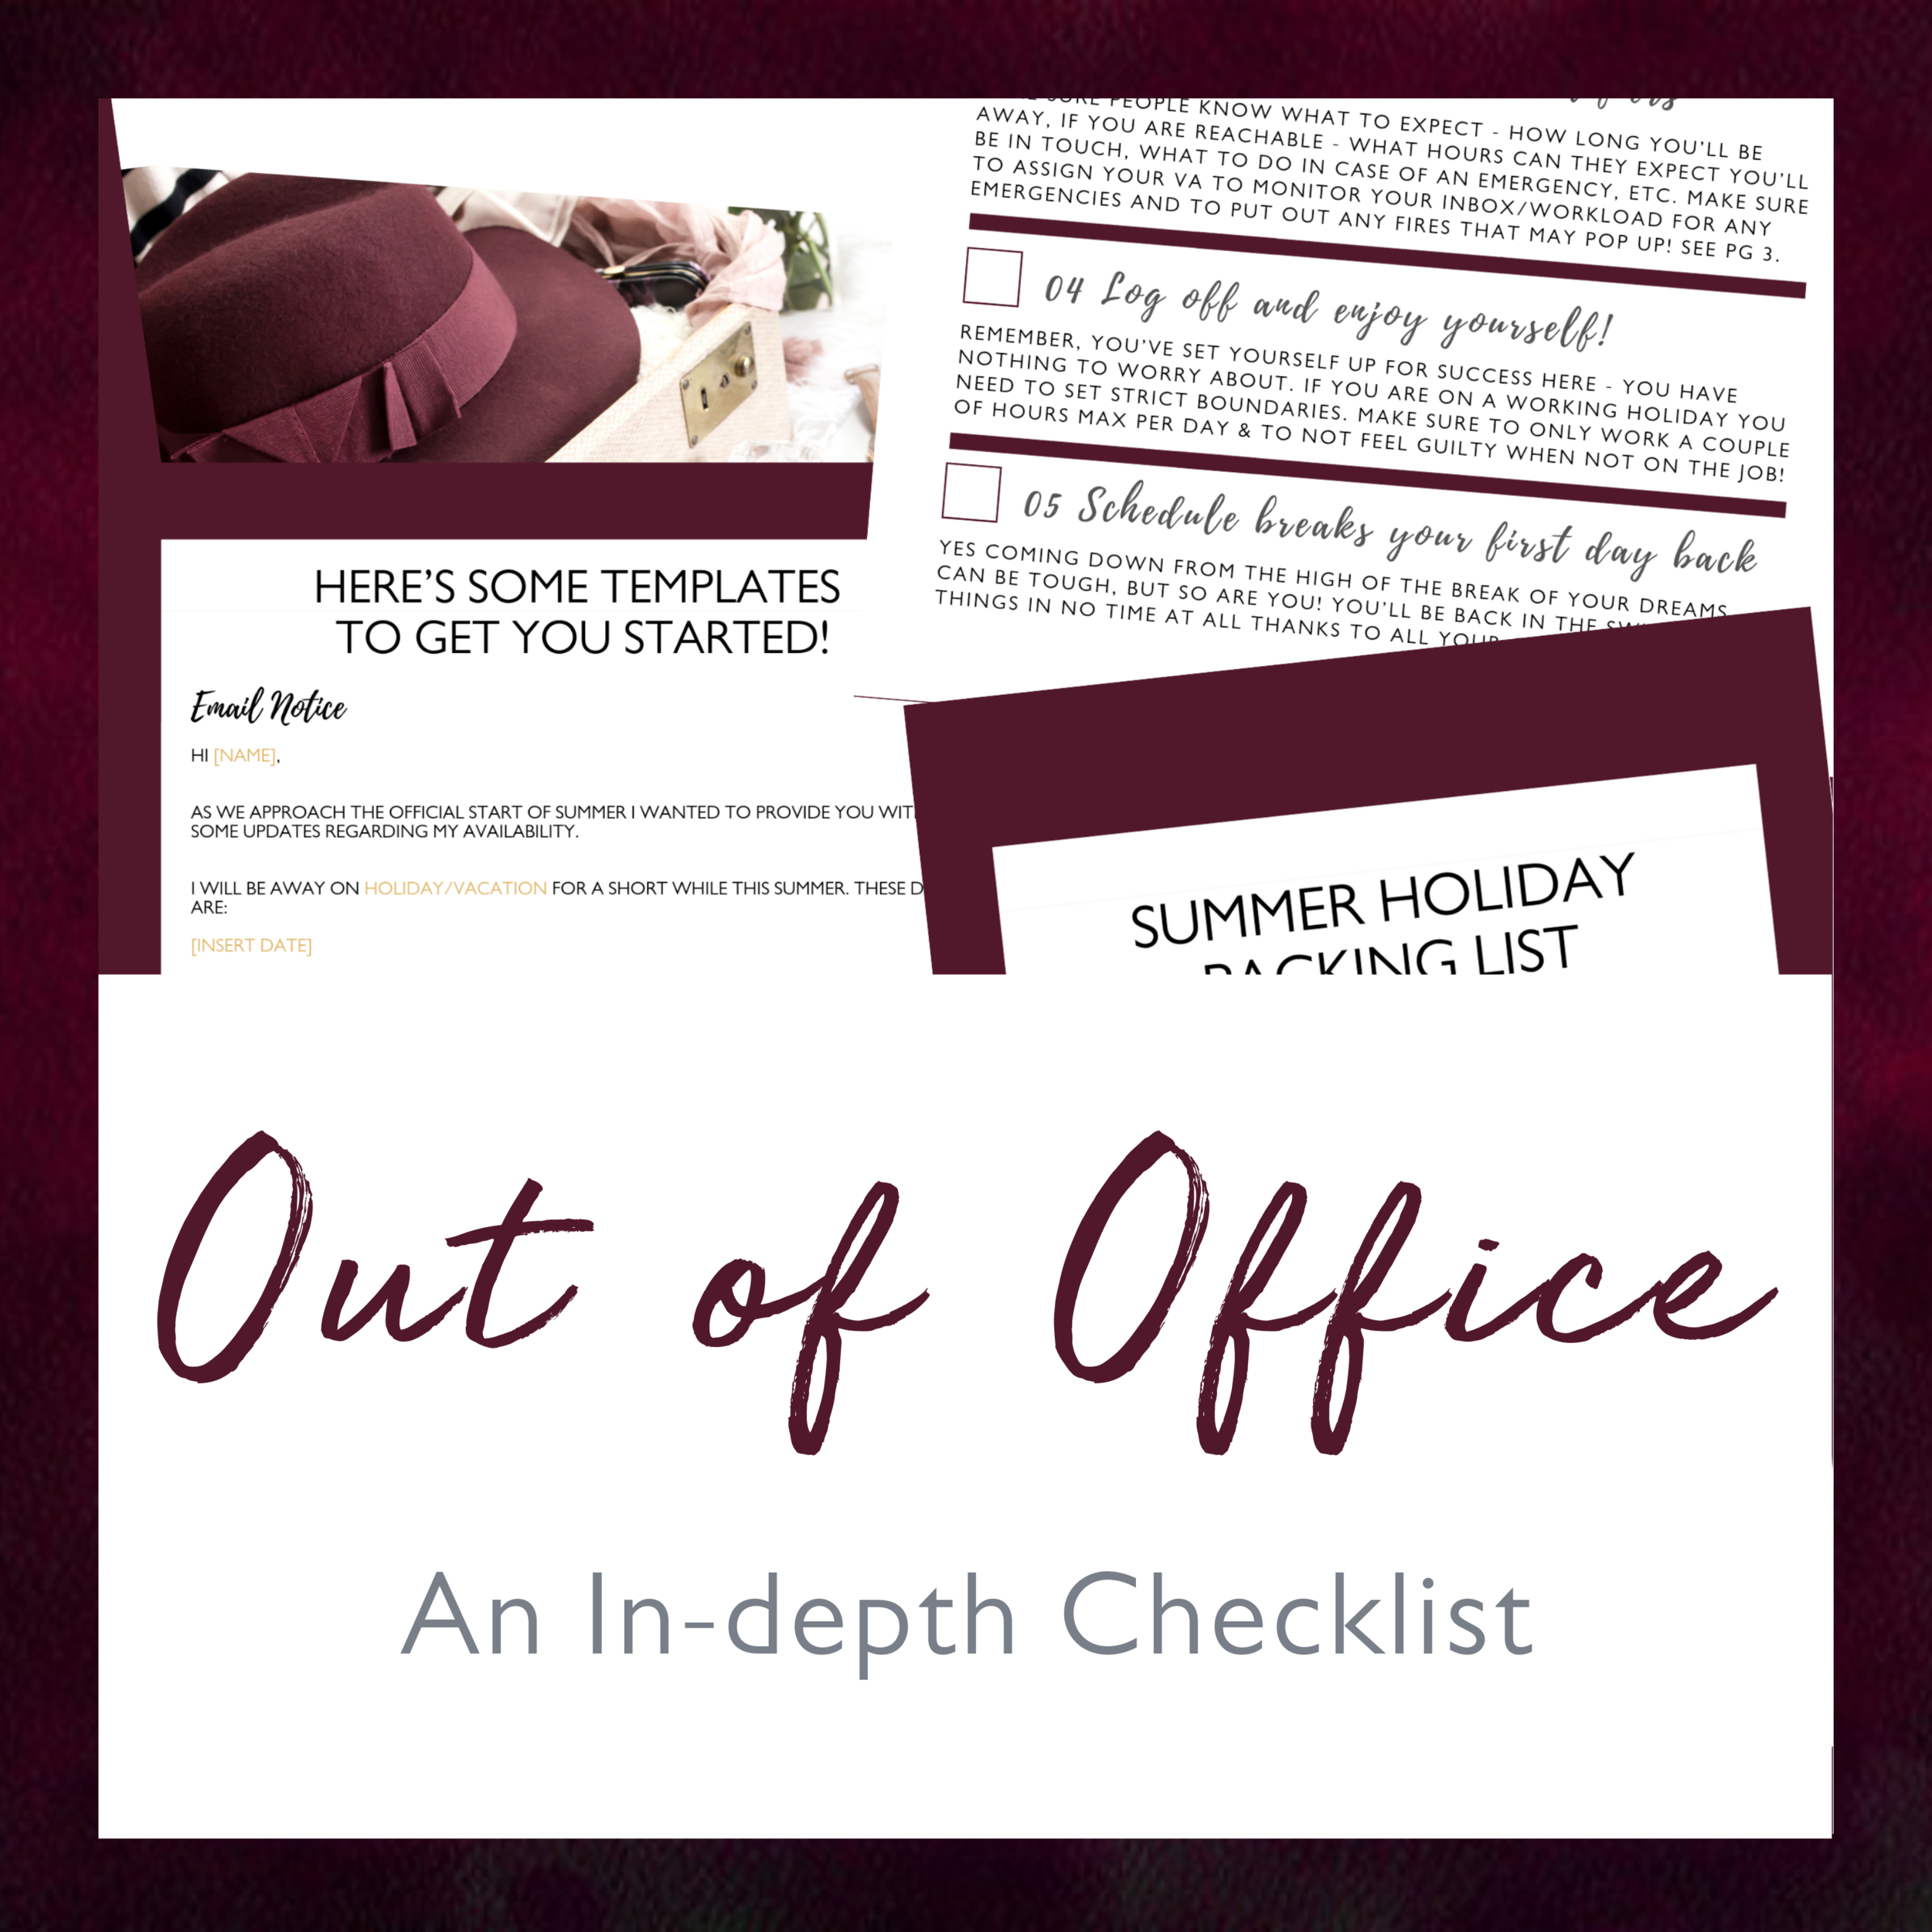 In the hustle to get everything done before you sign off and relax - there are so many things you can forget. Use this handy reusable checklist to make sure you don't!